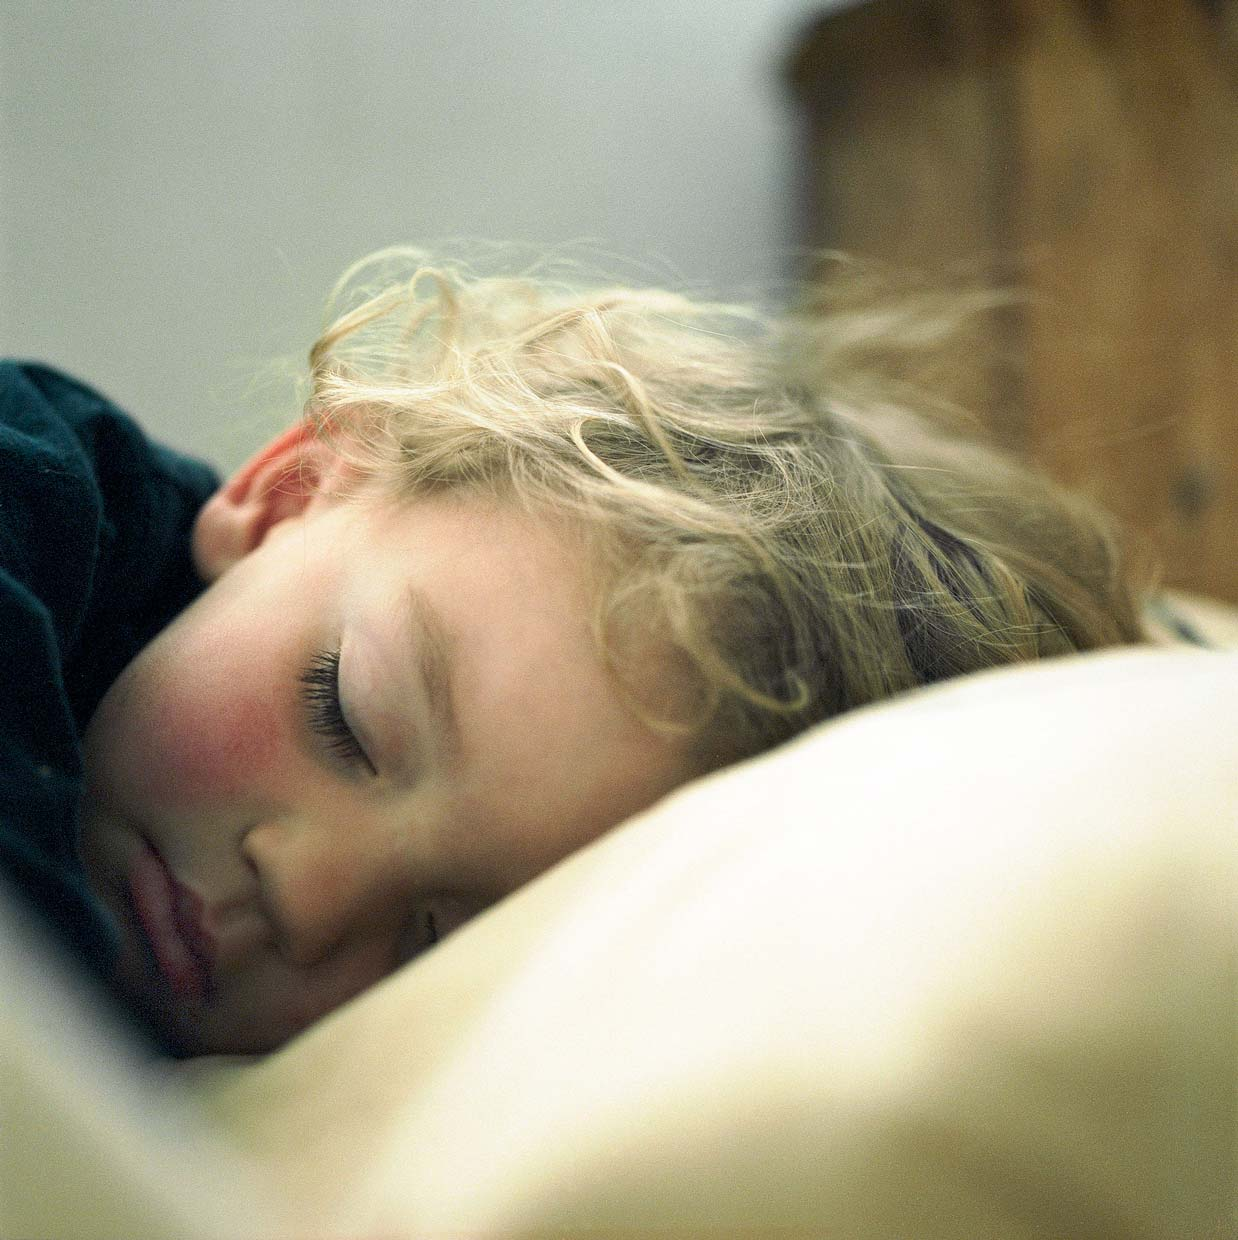 Visible,-Now-sleeping-boy-46